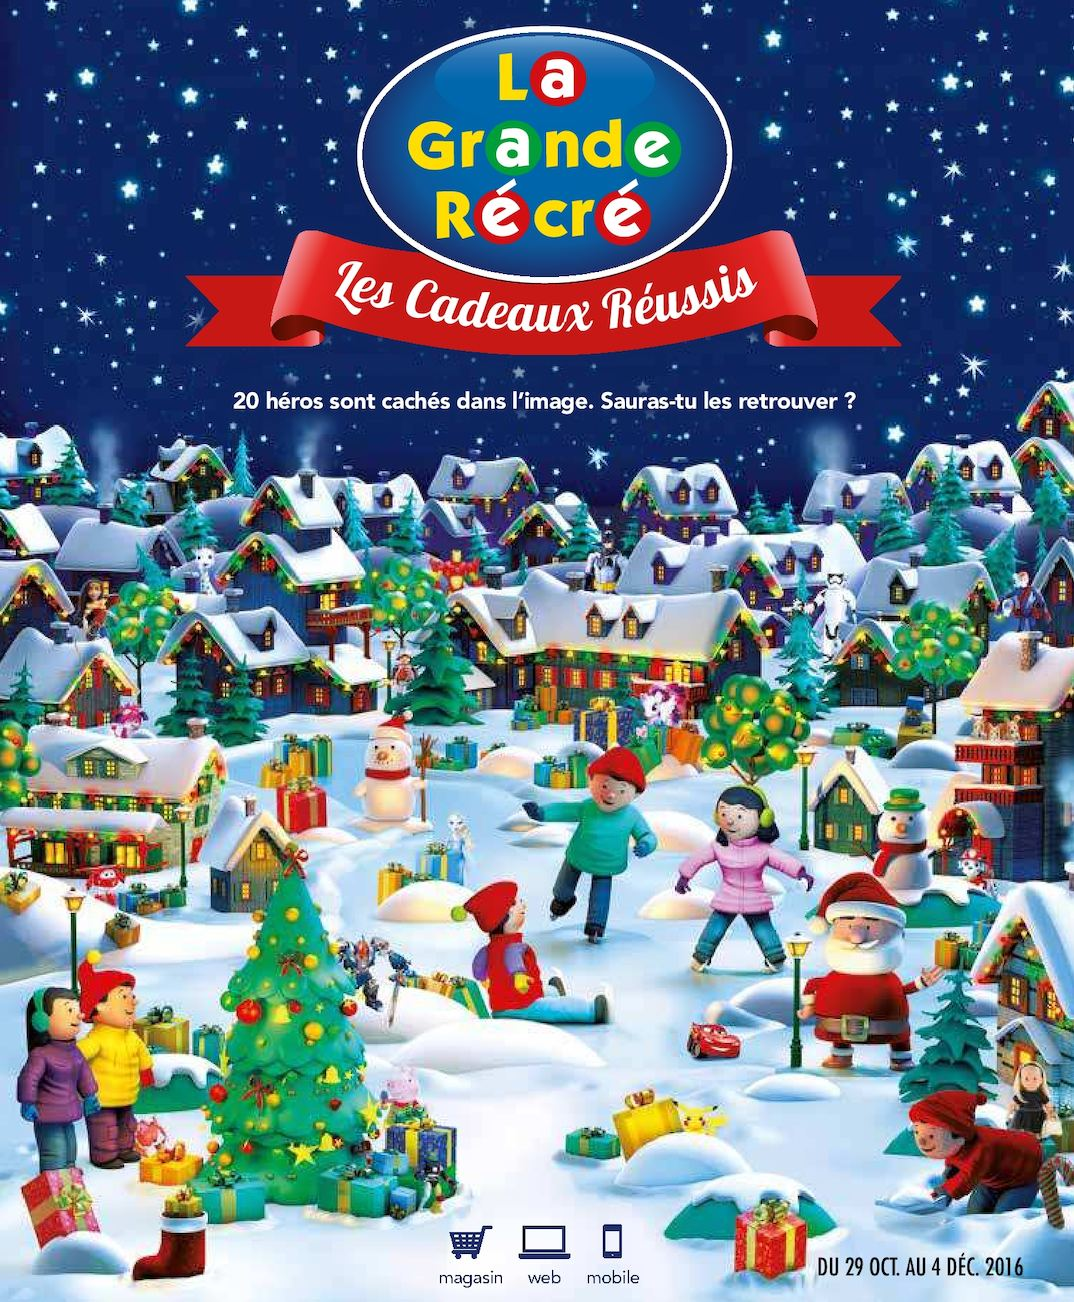 fc80031b3f0a6 Calaméo - LA GRANDE RECRE MARTINIQUE CATALOGUE NOEL 2017